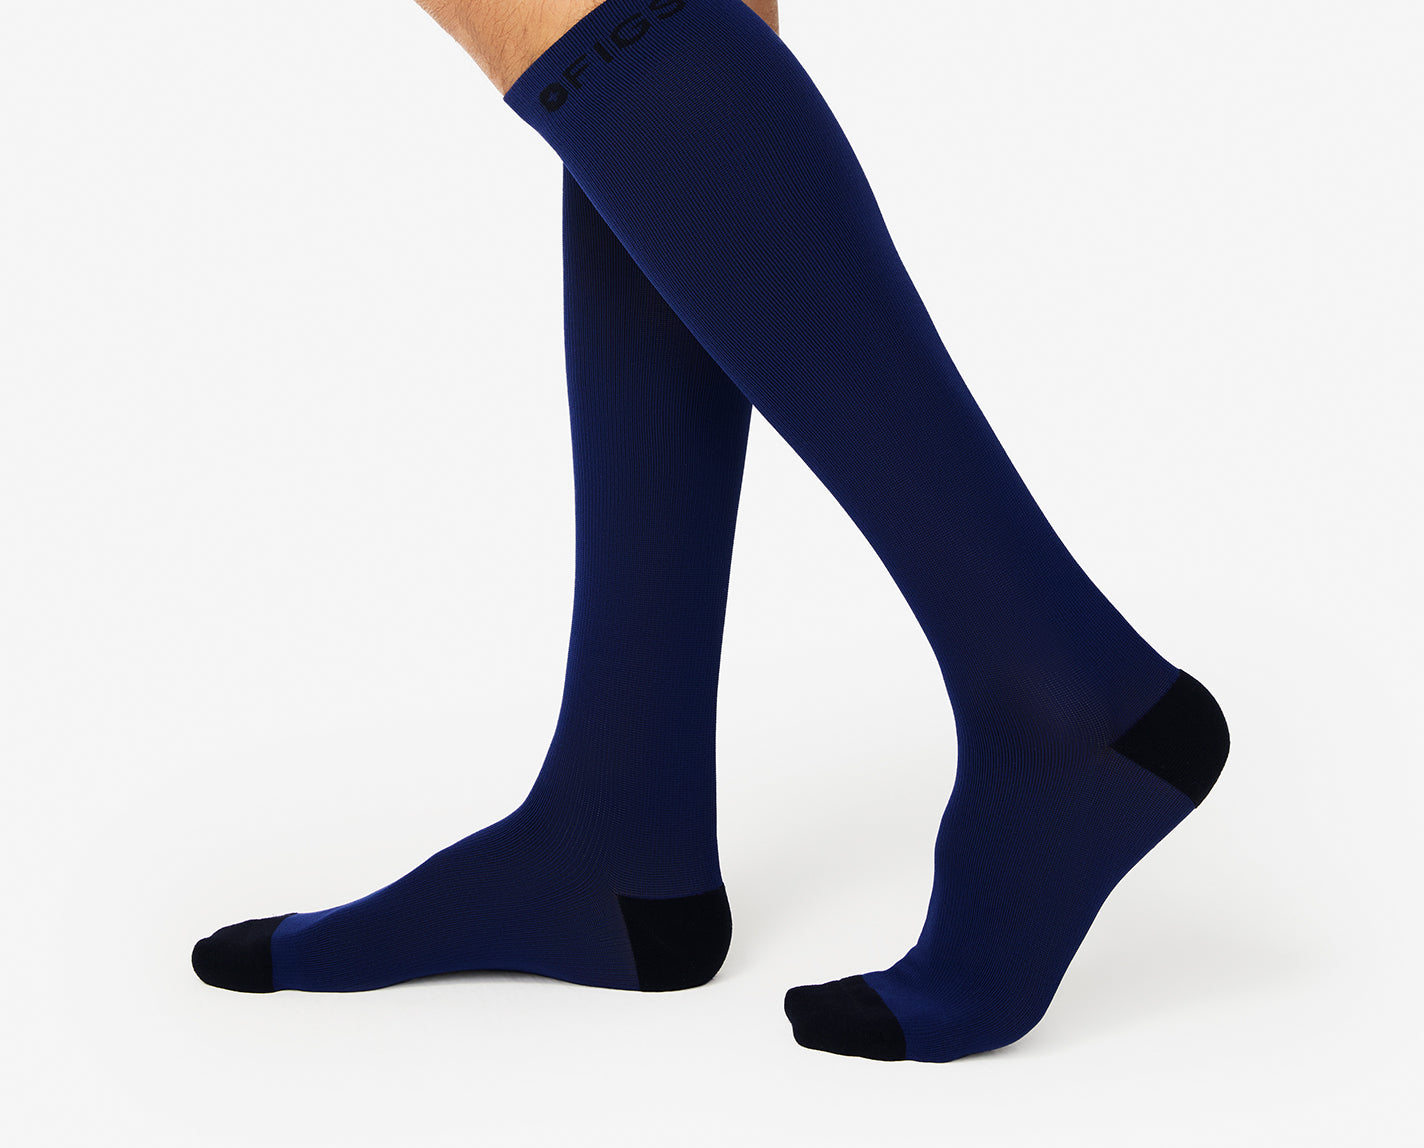 Just a real true blue. Our Navy 100% Awesome Compression Socks are ready to support you 24/7 — they help relieve tired and achy legs. They're also breathable, ridiculously soft and conveniently match a whole bunch of your FIGS!